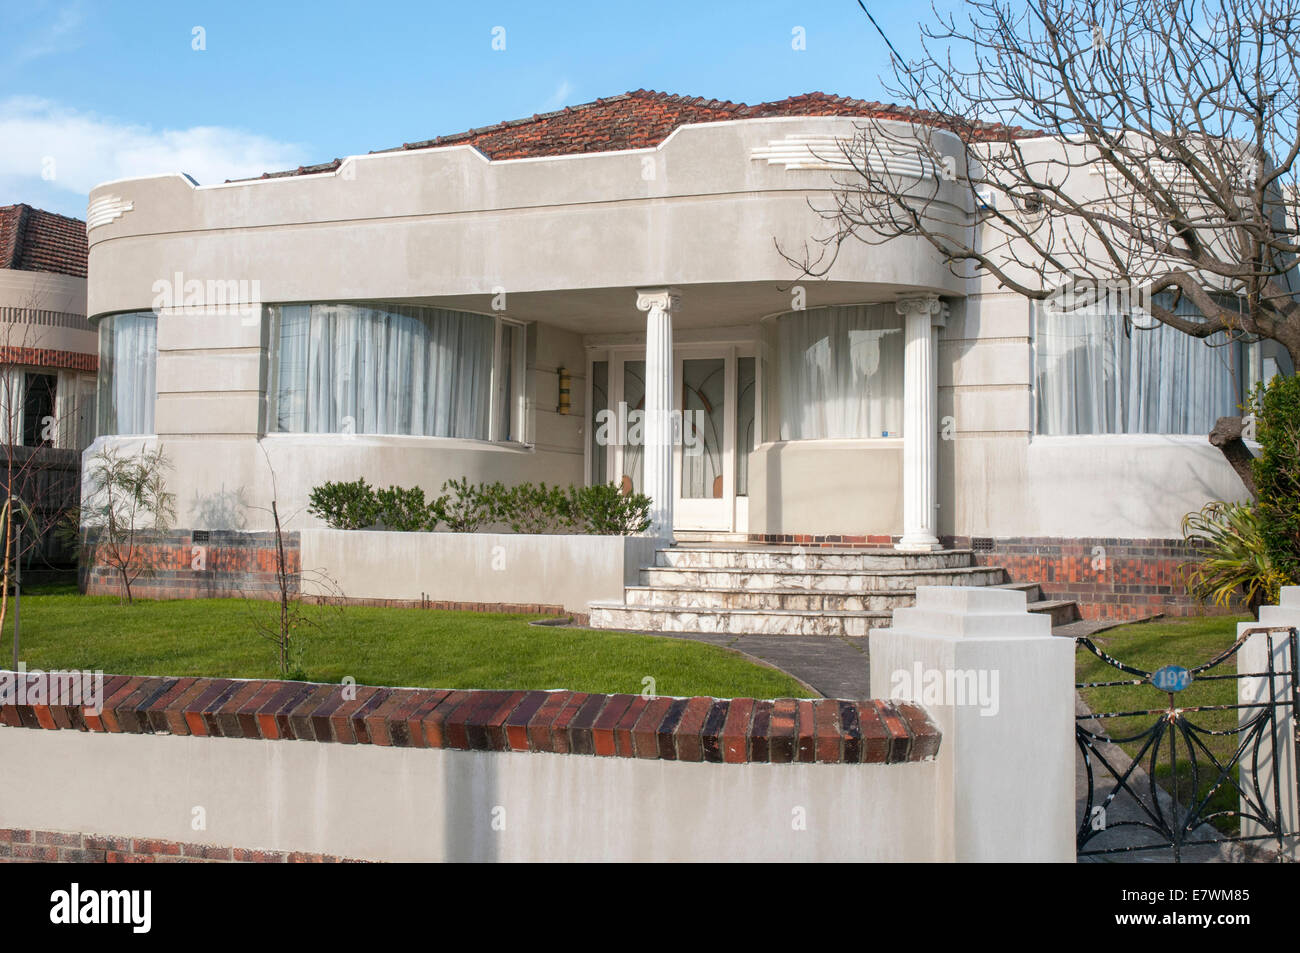 Stock Photo Waterfall Art Deco Style Homes In A Melbourne Suburb Usually Dating 1940 1950